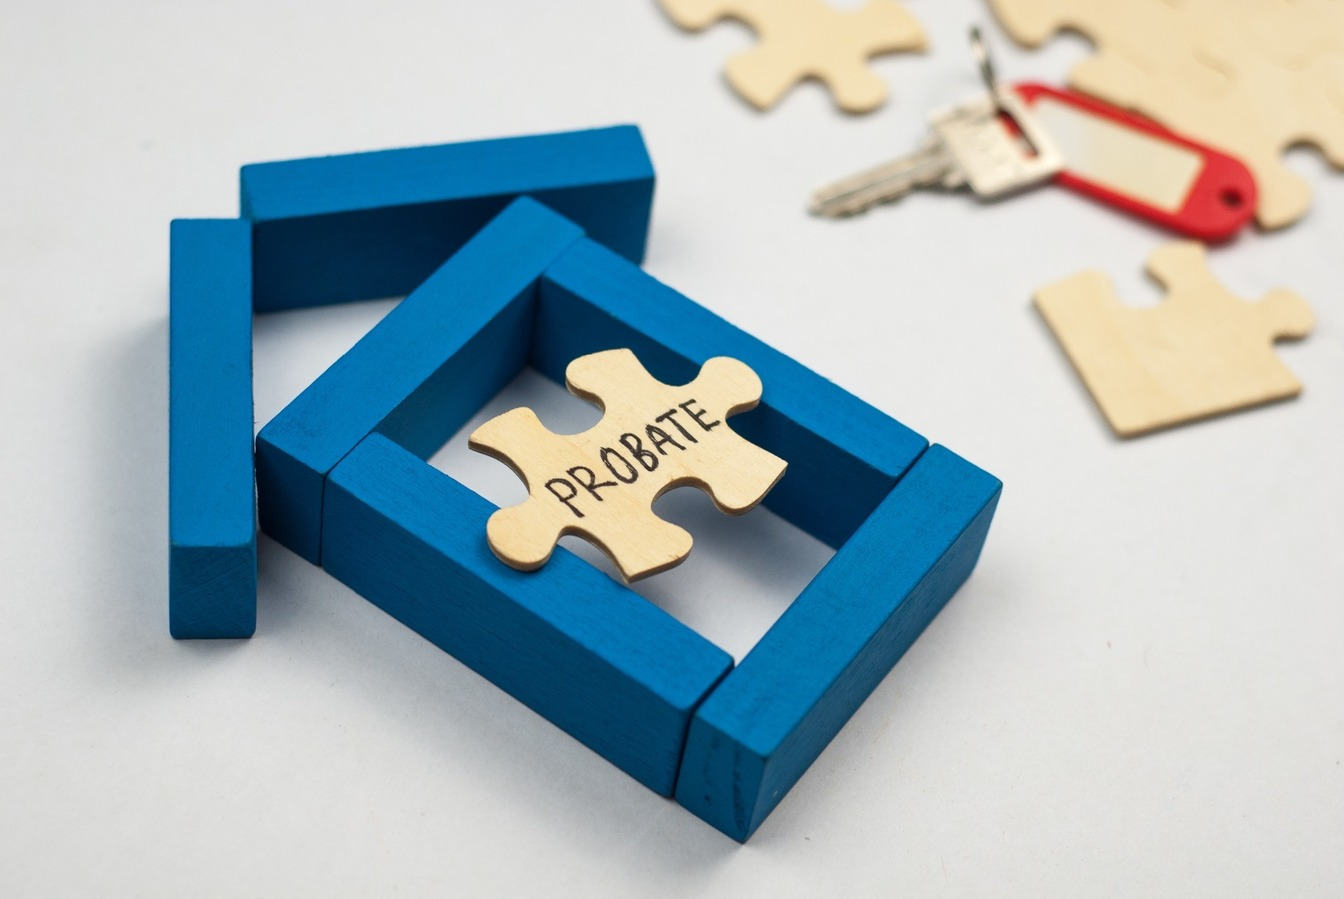 A wooden puzzle piece with 'Probate' written on in black pen, resting on a blue, block wooden house.